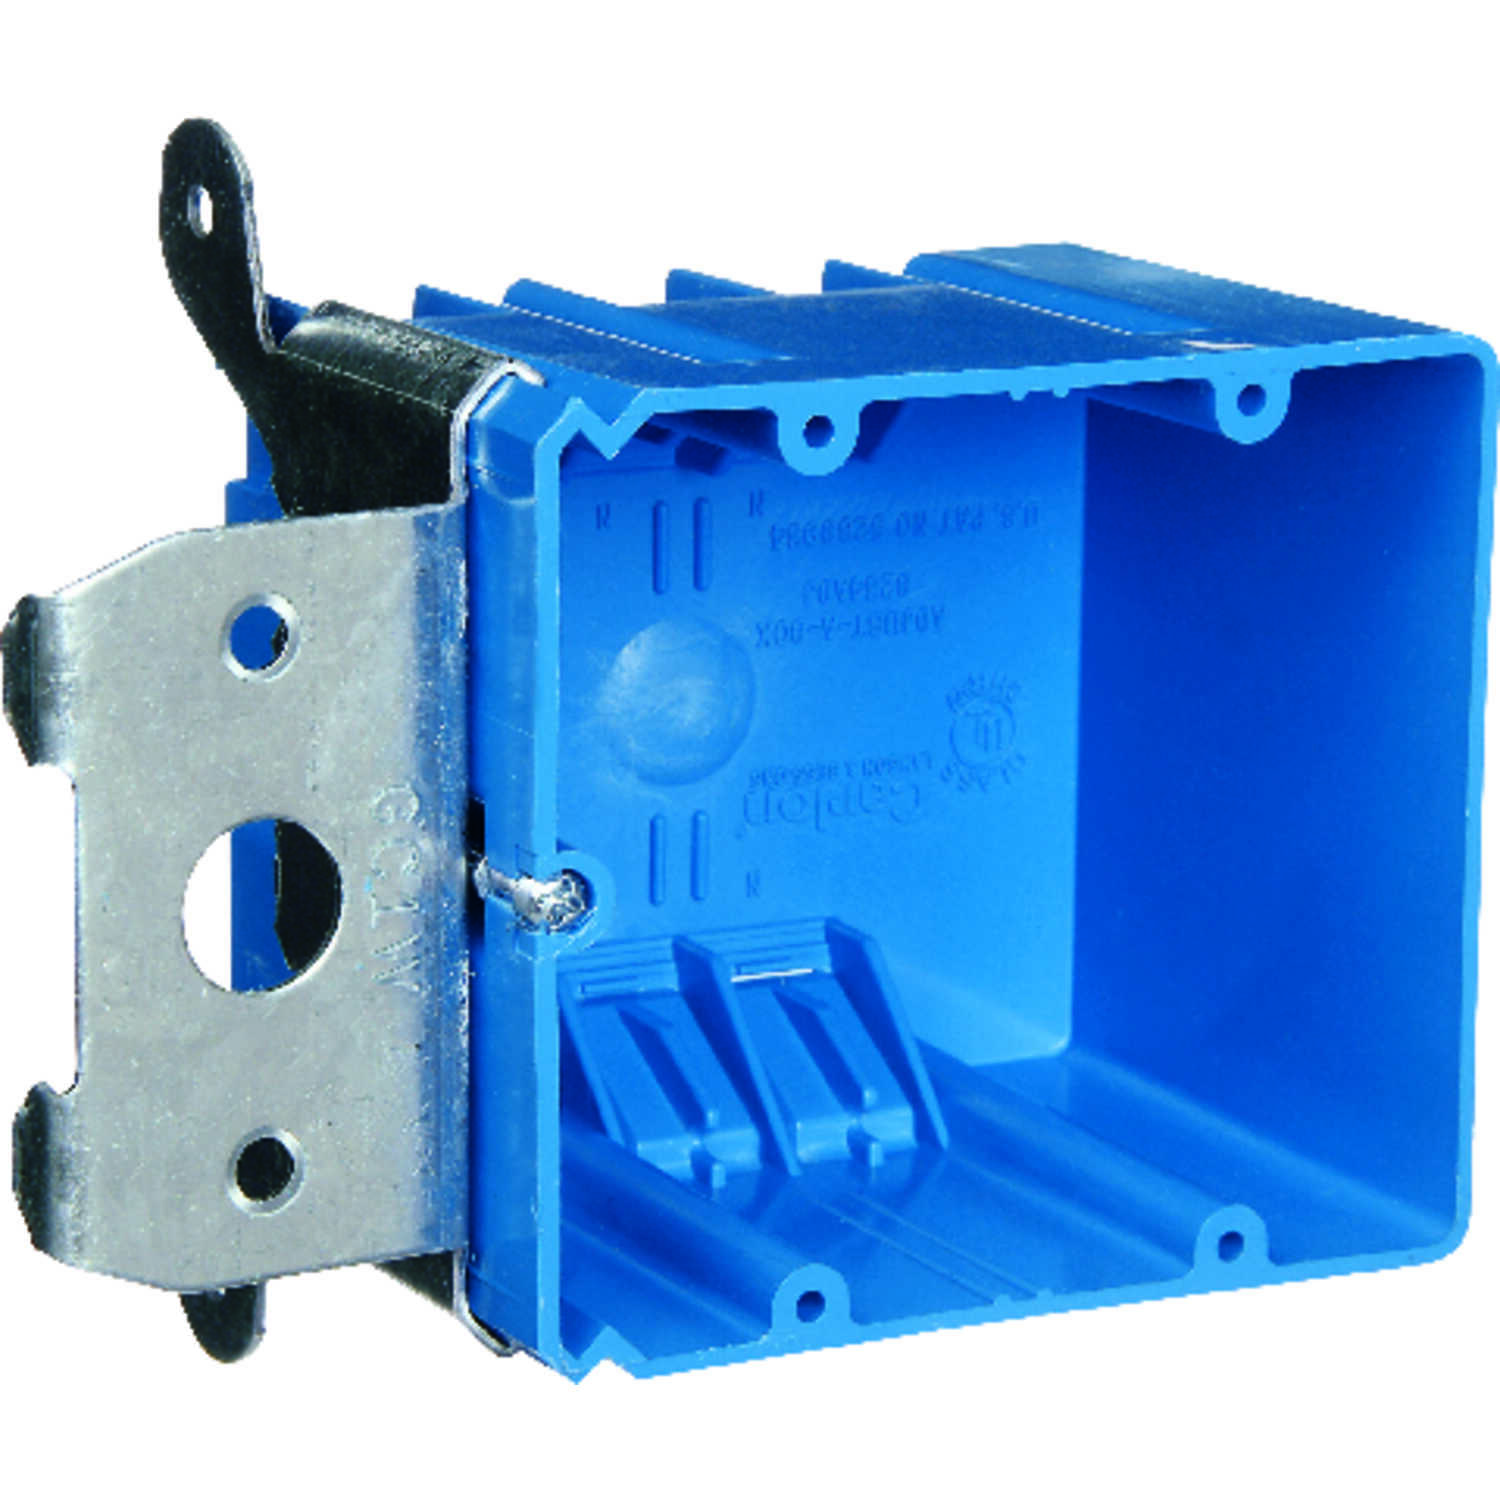 Carlon  3-5/8 in. Rectangle  2 gang Outlet Box  Blue  PVC  2 Gang